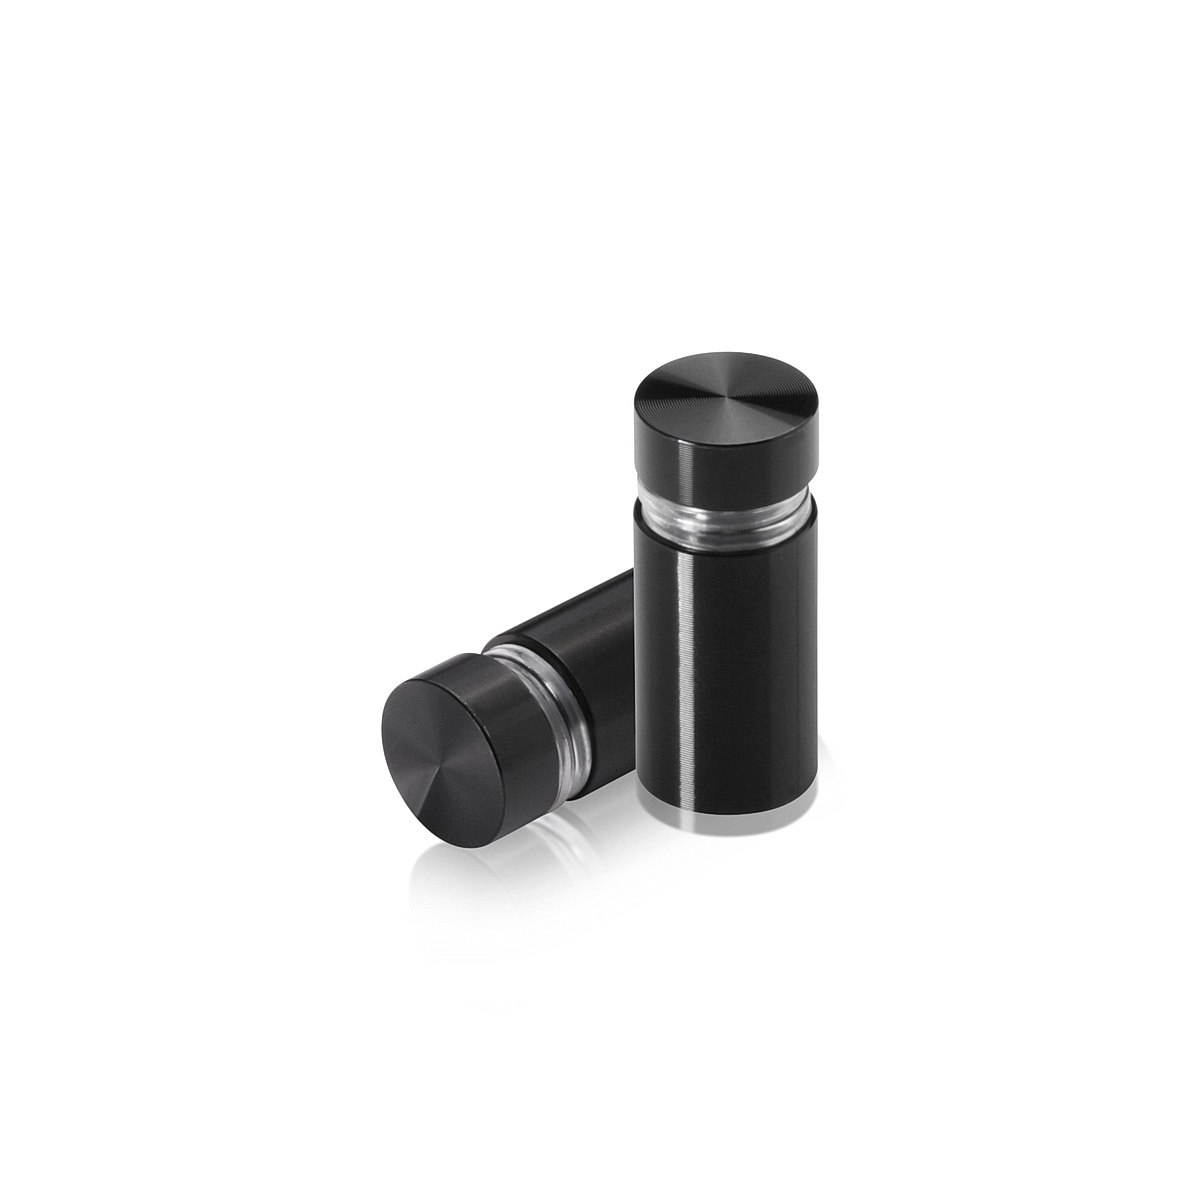 Tamper Proof Aluminum Flat Head Standoffs, Diameter: 1/2'', Standoff: 3/4'', Black Anodized Finish